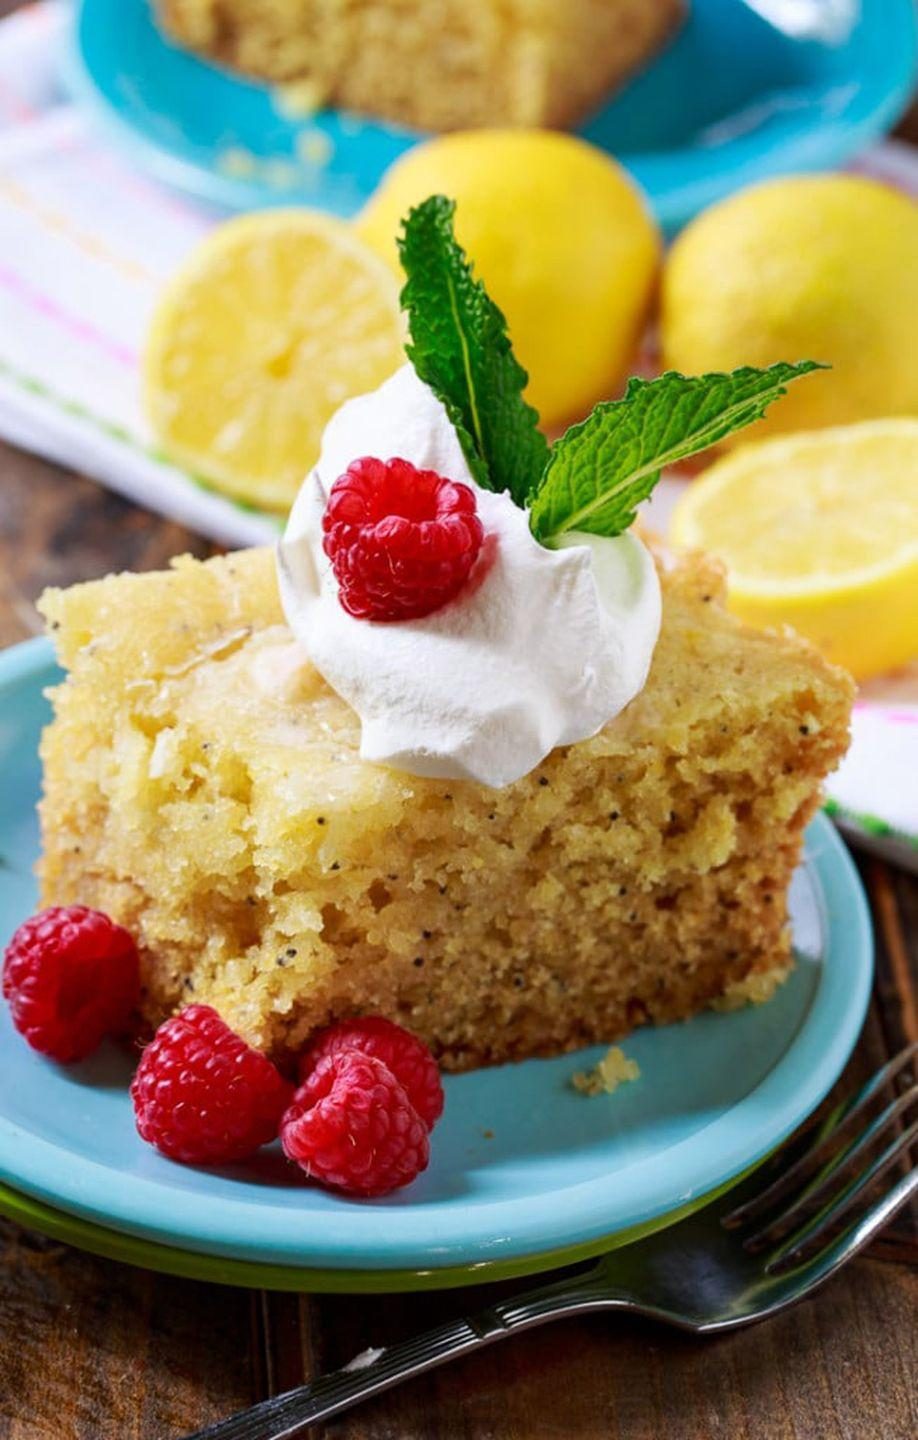 """<p>A dollop of whipped cream, fresh fruit, and mint make this dessert oh-so-refreshing. </p><p><strong>Get the recipe at <a href=""""https://spicysouthernkitchen.com/slow-cooker-lemon-cake/"""" rel=""""nofollow noopener"""" target=""""_blank"""" data-ylk=""""slk:Spicy Southern Kitchen"""" class=""""link rapid-noclick-resp"""">Spicy Southern Kitchen</a>.</strong></p>"""